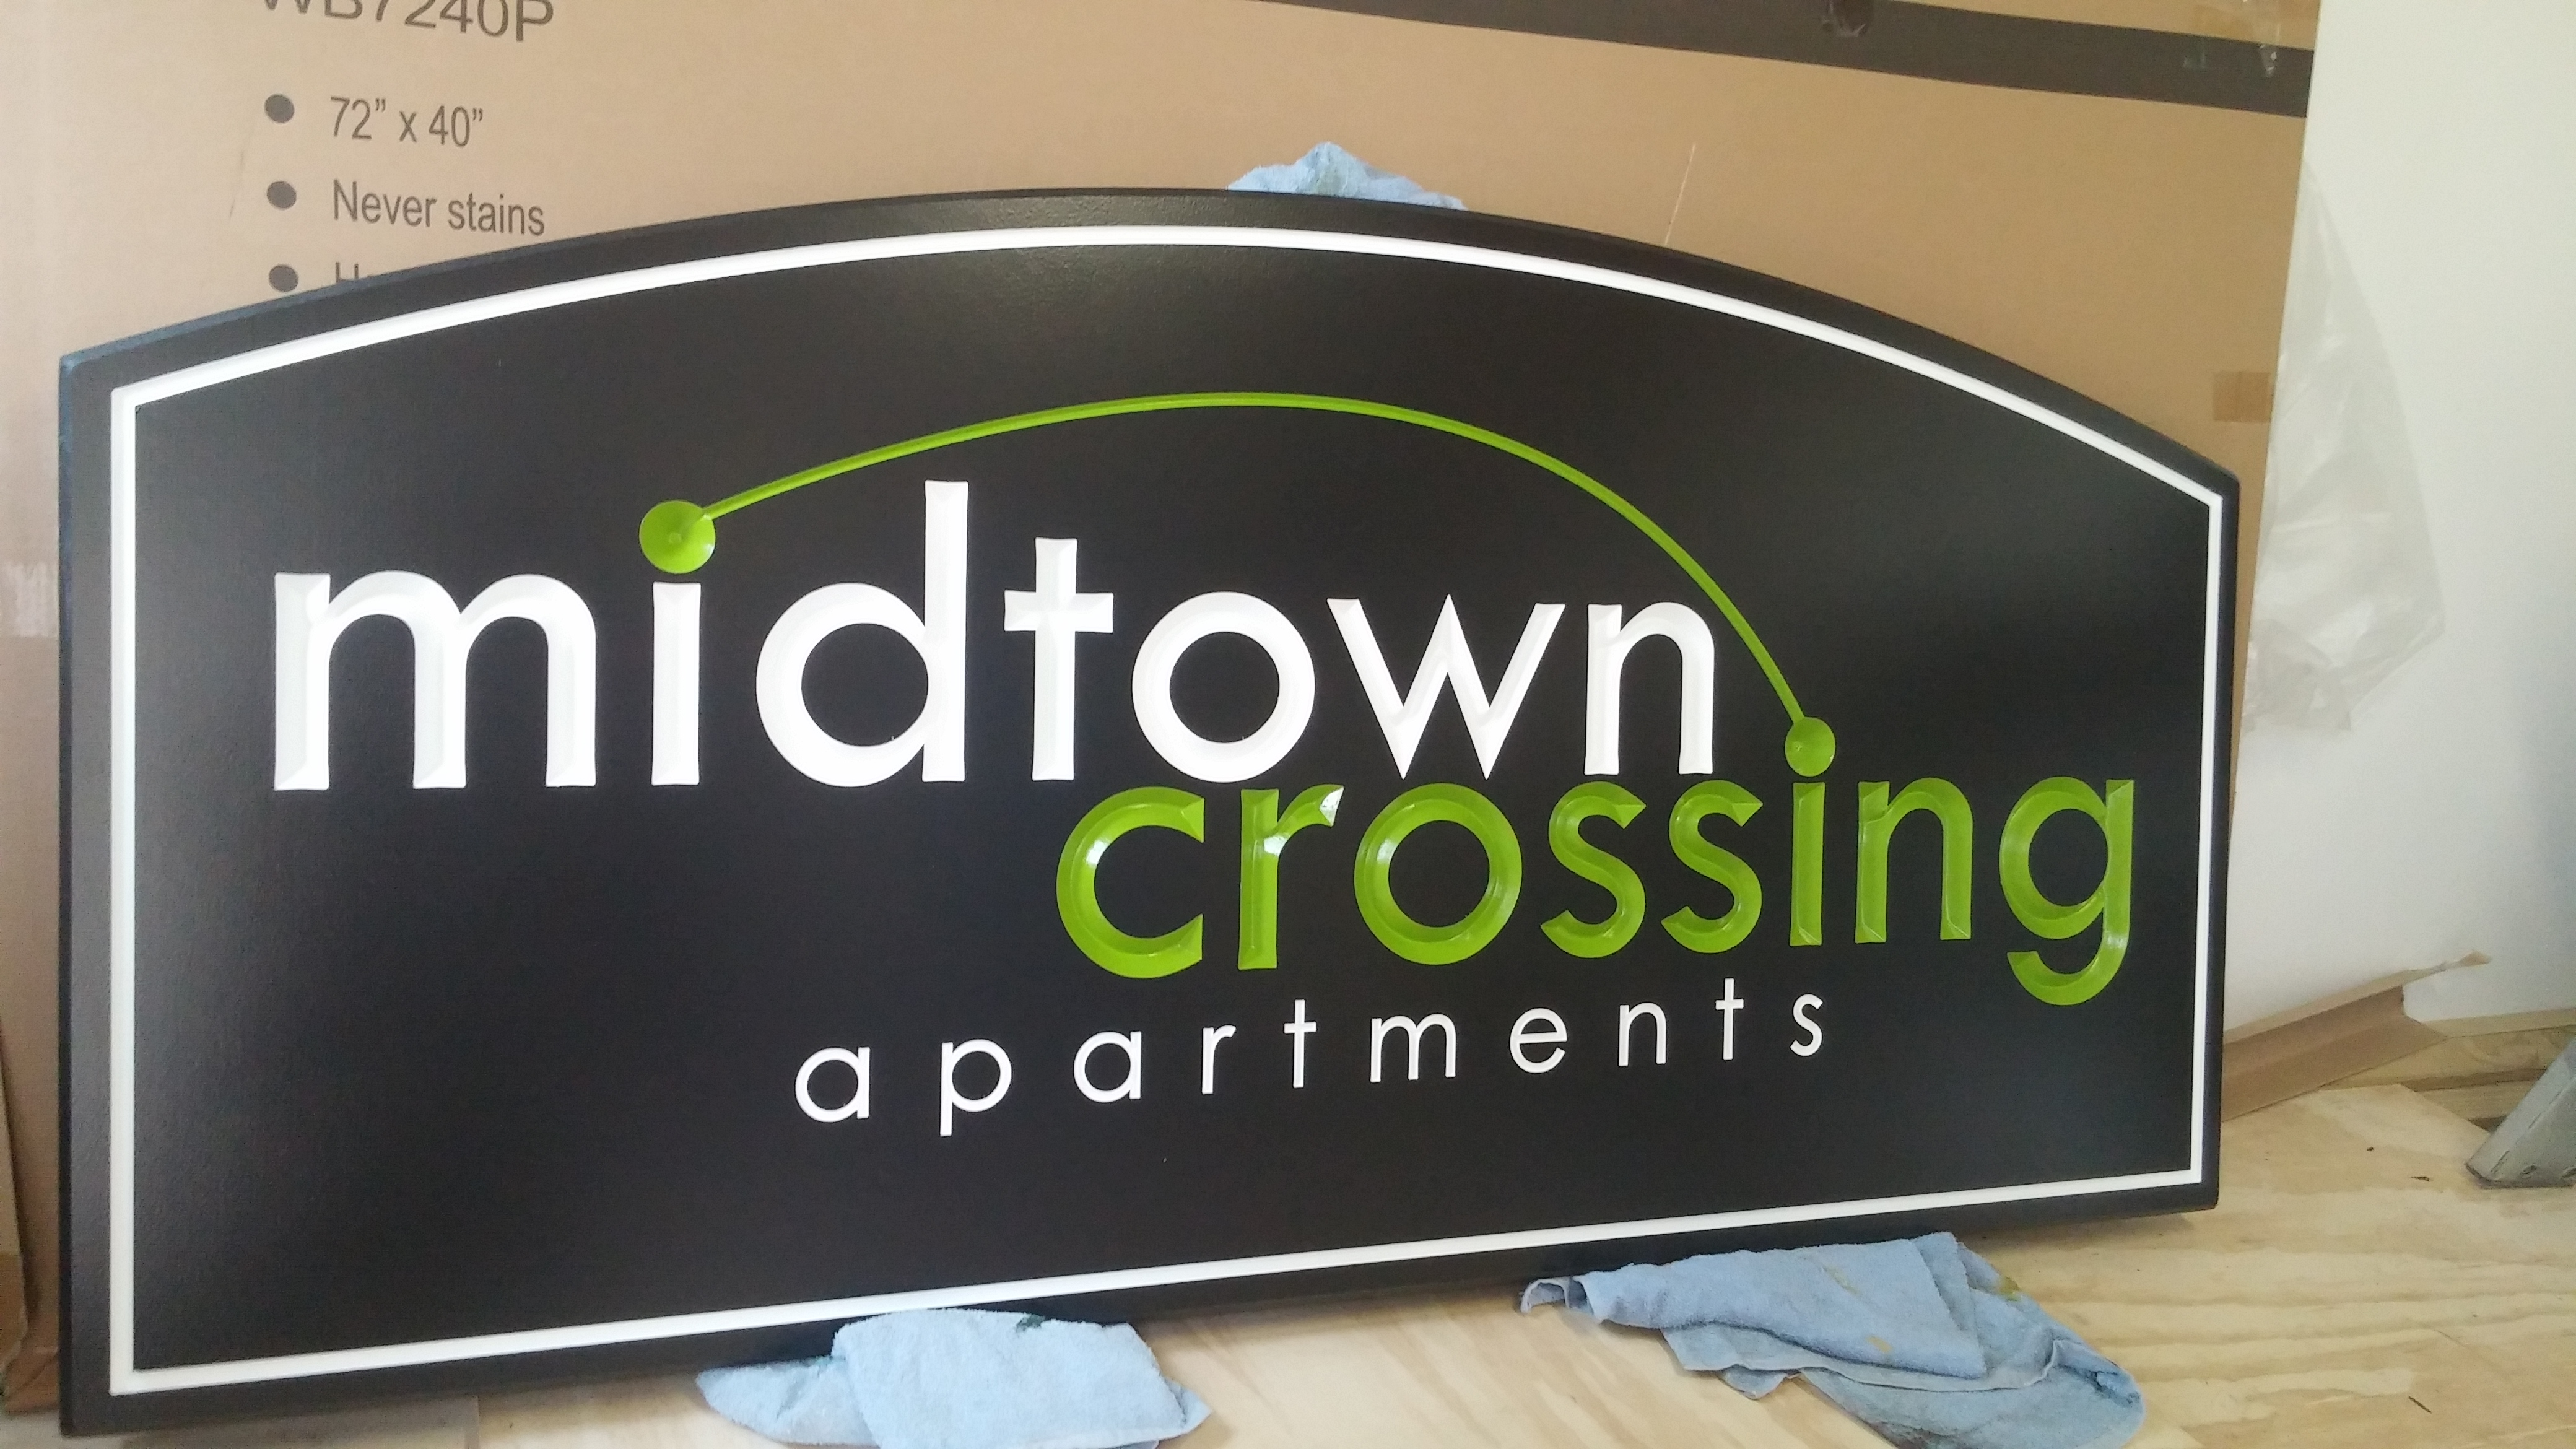 Midtown Crossing Apartments Sign By JD Sign Co